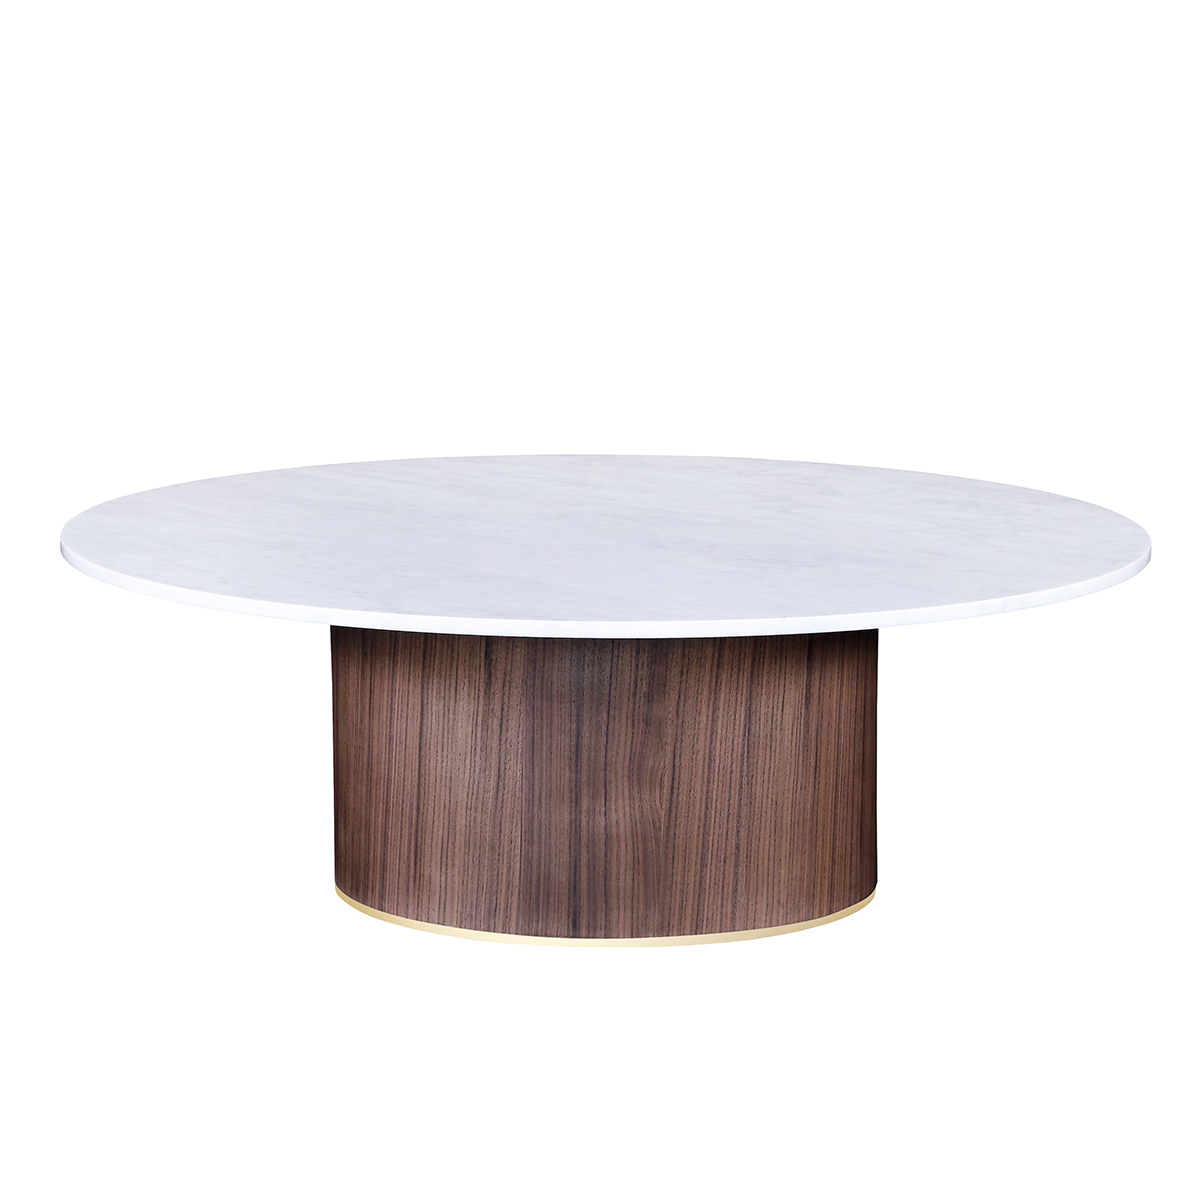 Delano Coffee Table – Round